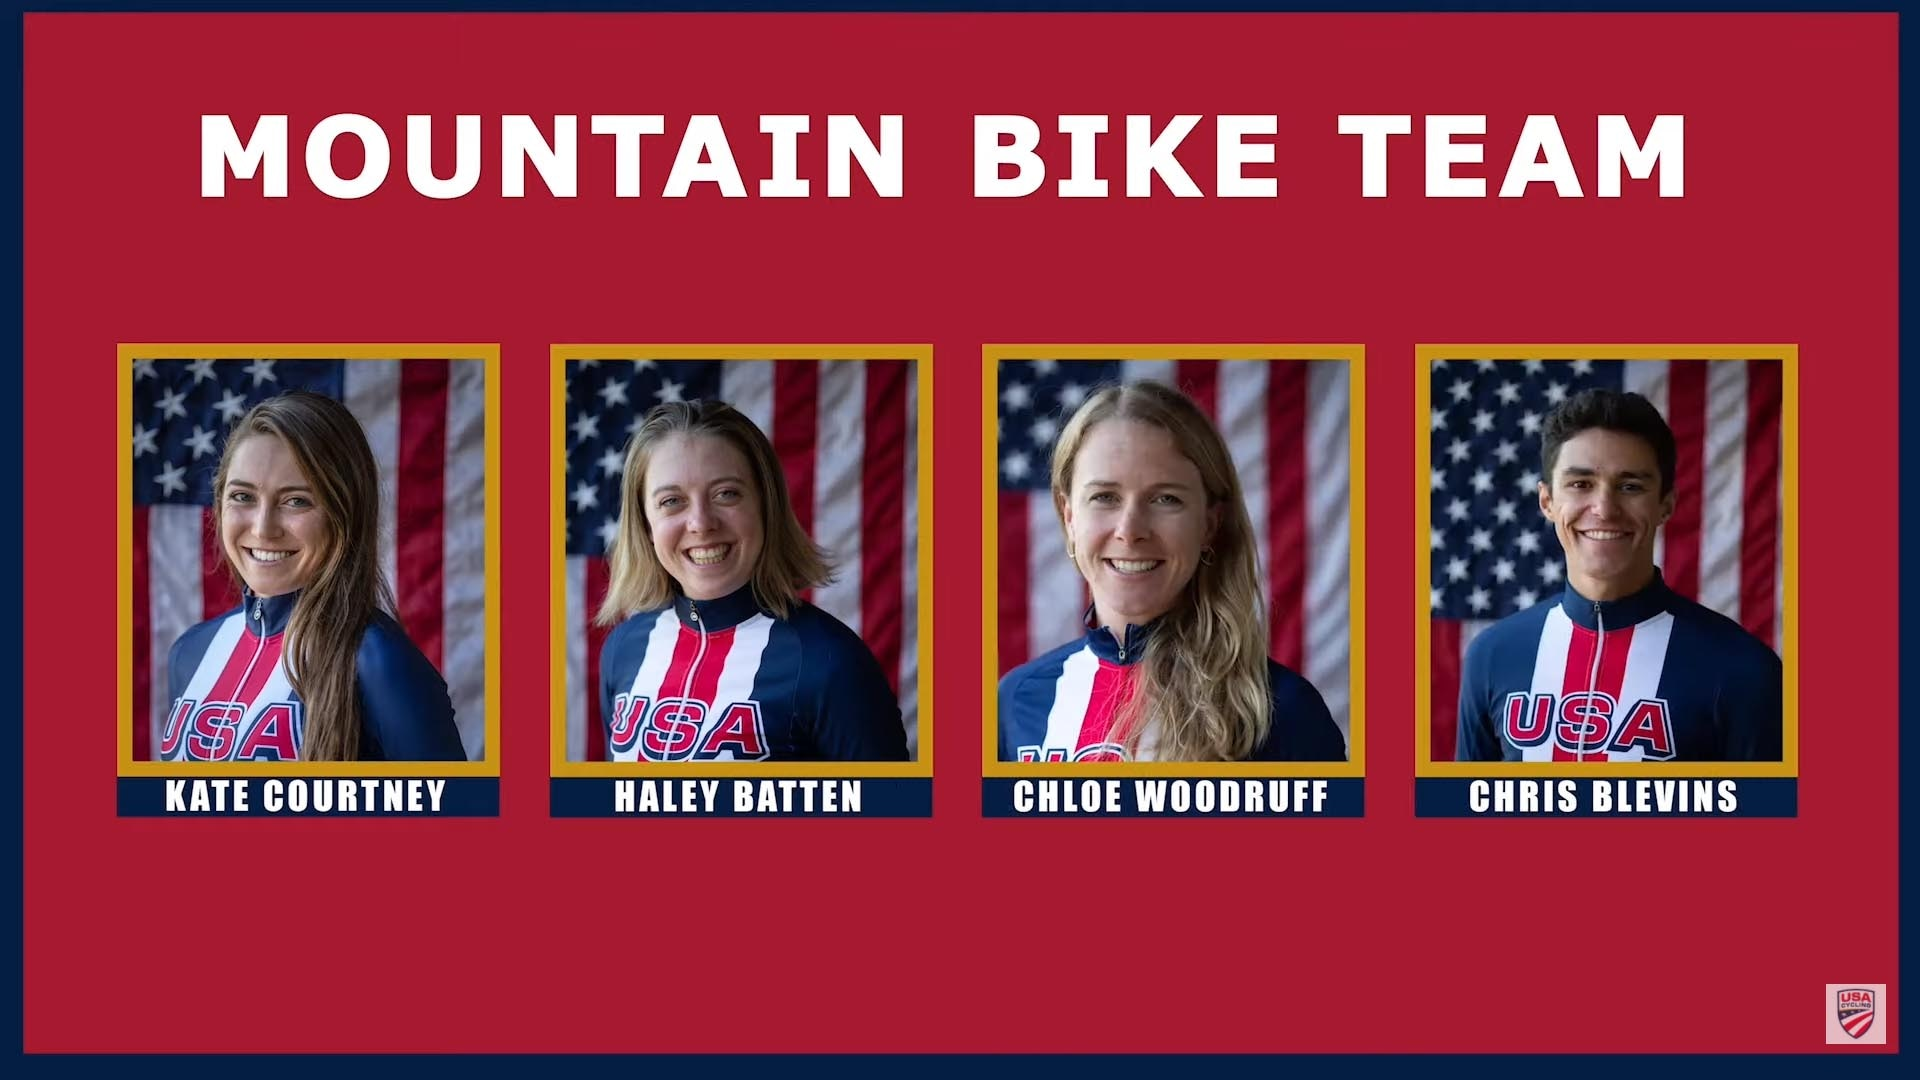 Team USA's mountain biking team roster for the Tokyo Olympics